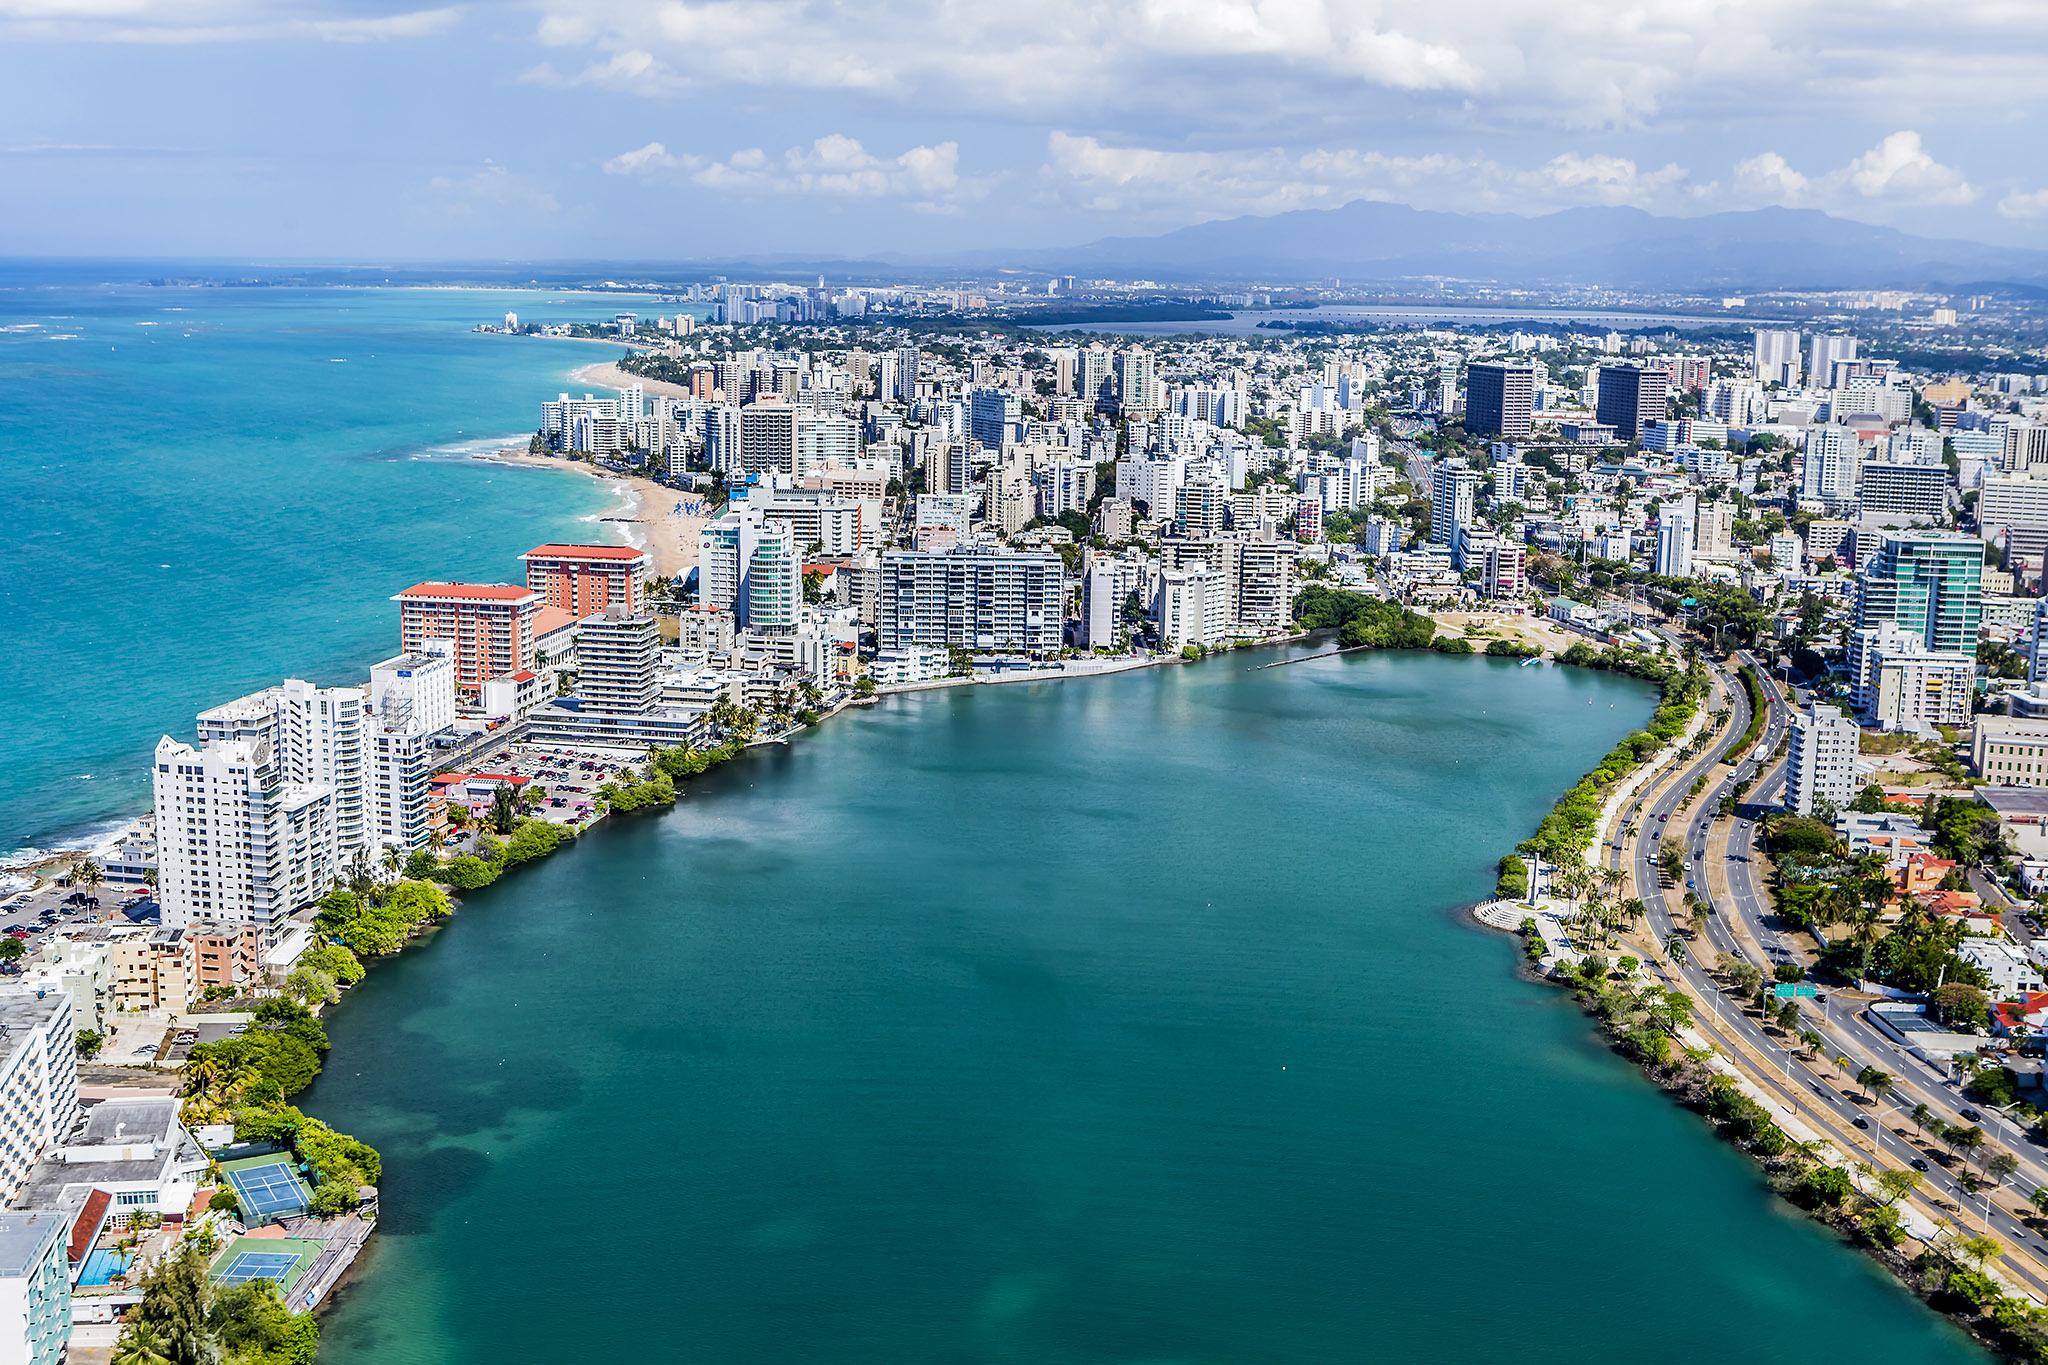 Puerto Rico Tourist Attractions - Discover Amazing Places